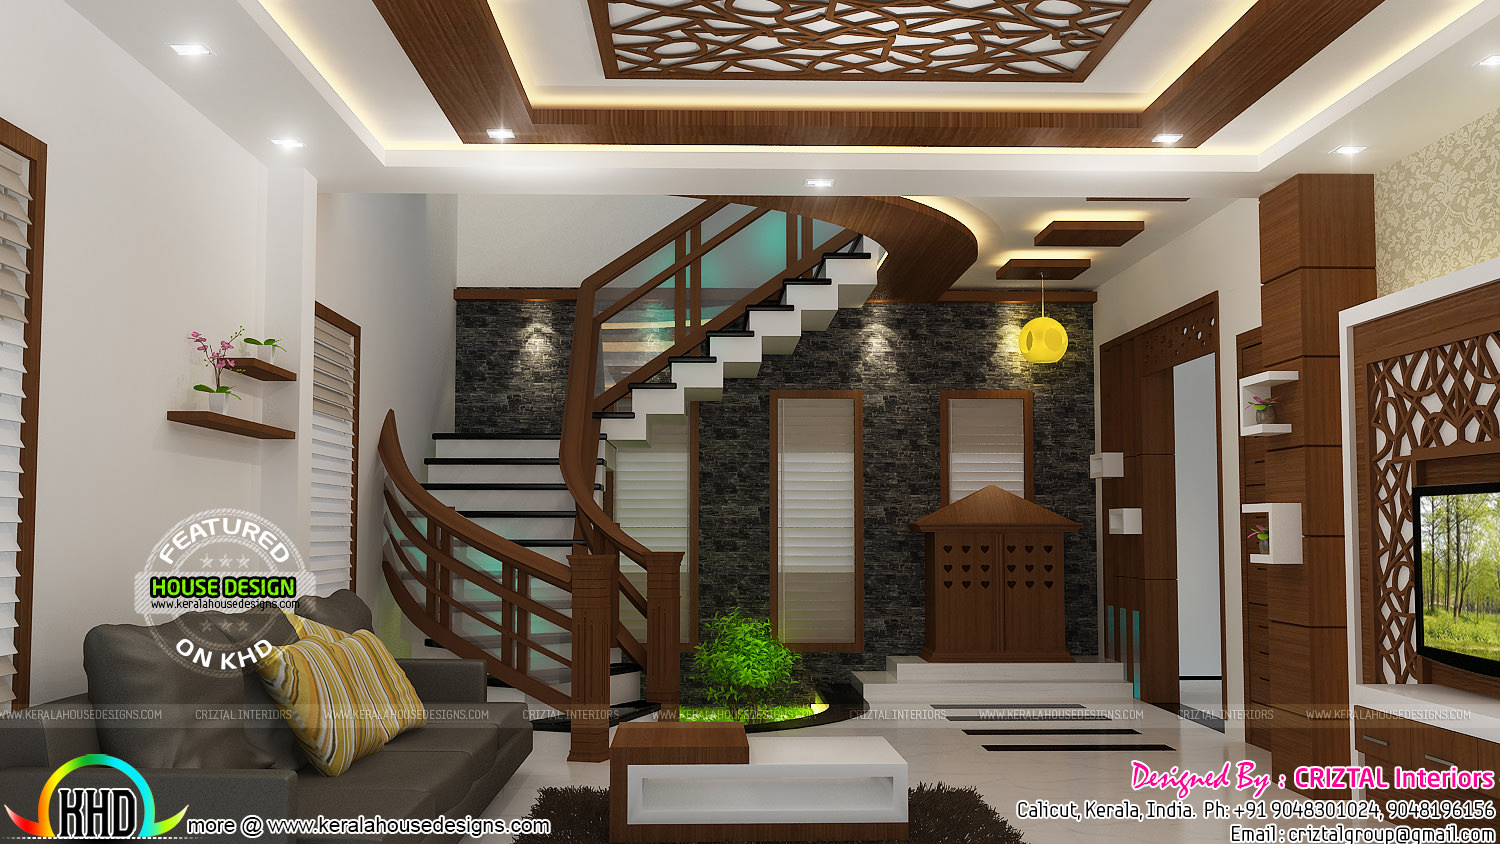 Bedroom dining hall and living interior kerala home for Hall interior design